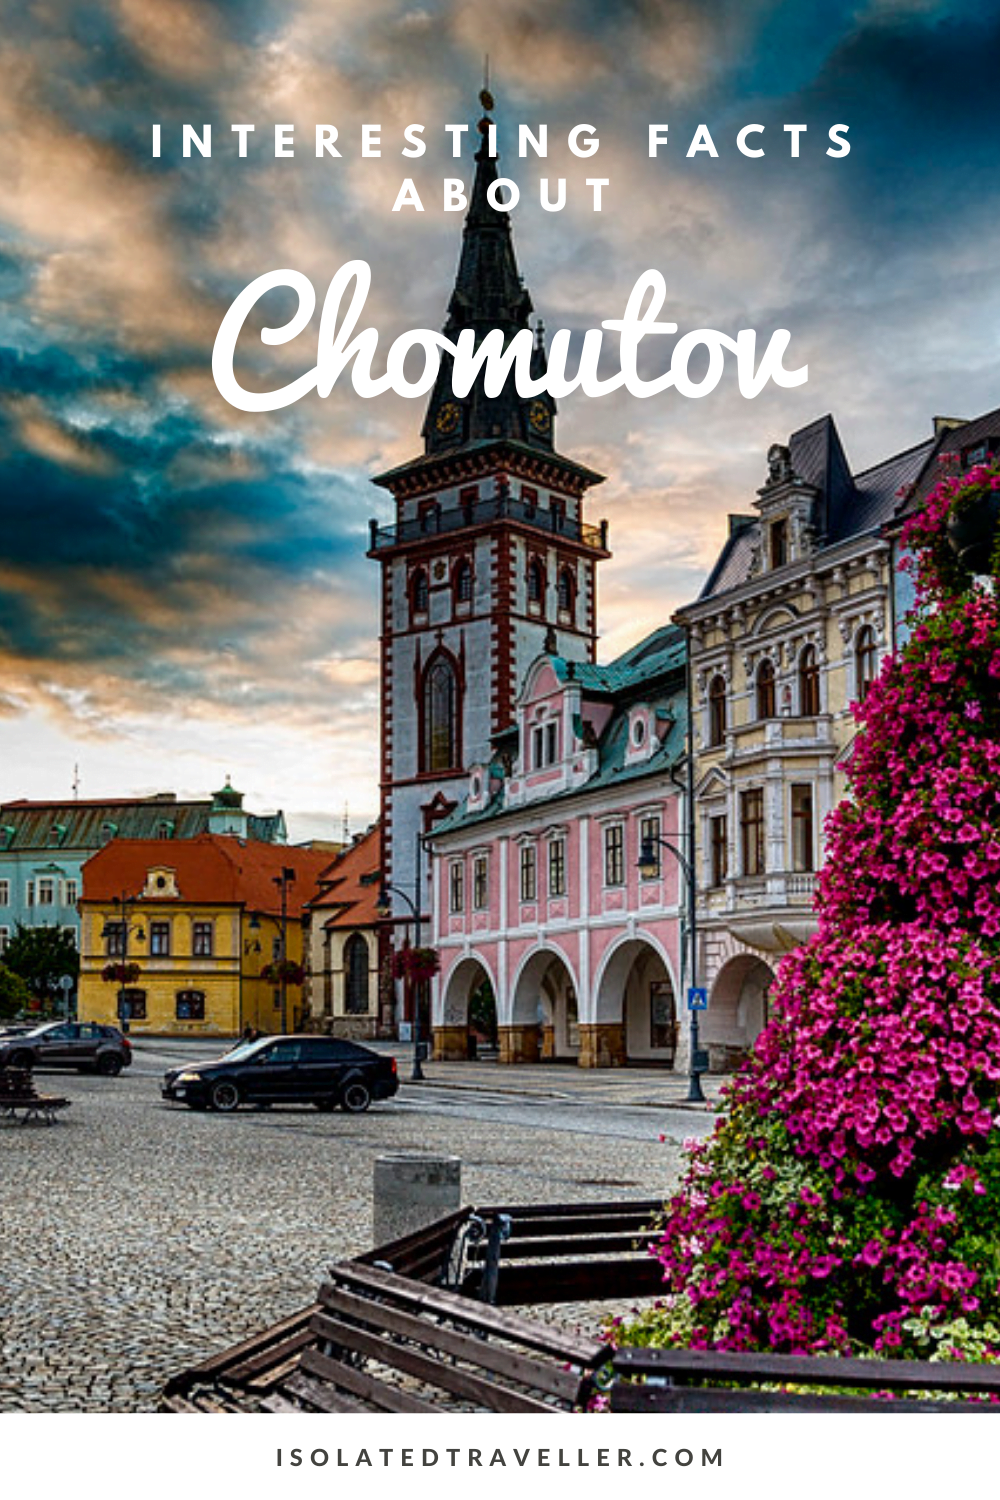 Facts About Chomutov